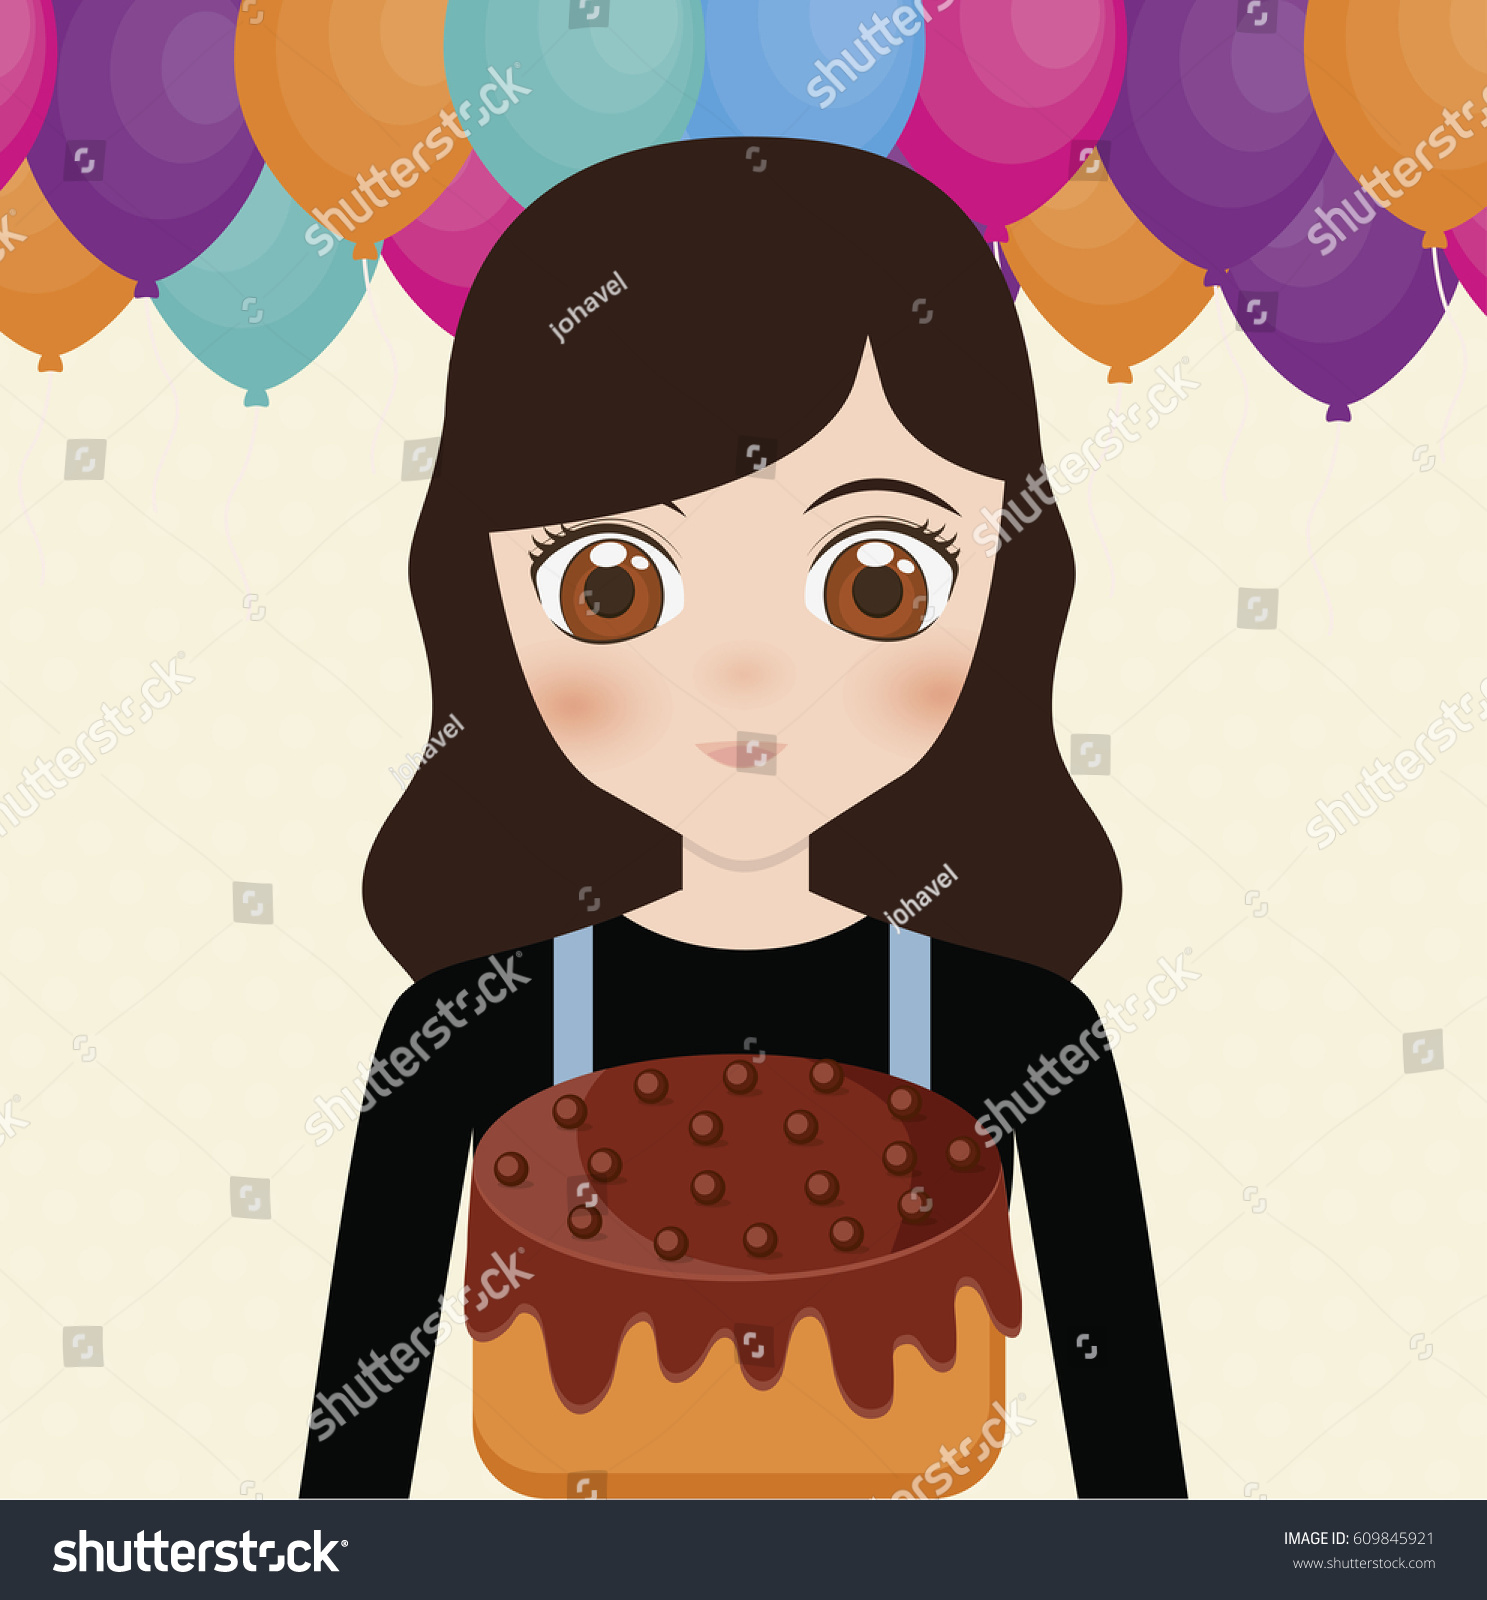 Happy Birthday Card Anime Girl Cake Stock Vector Royalty Free